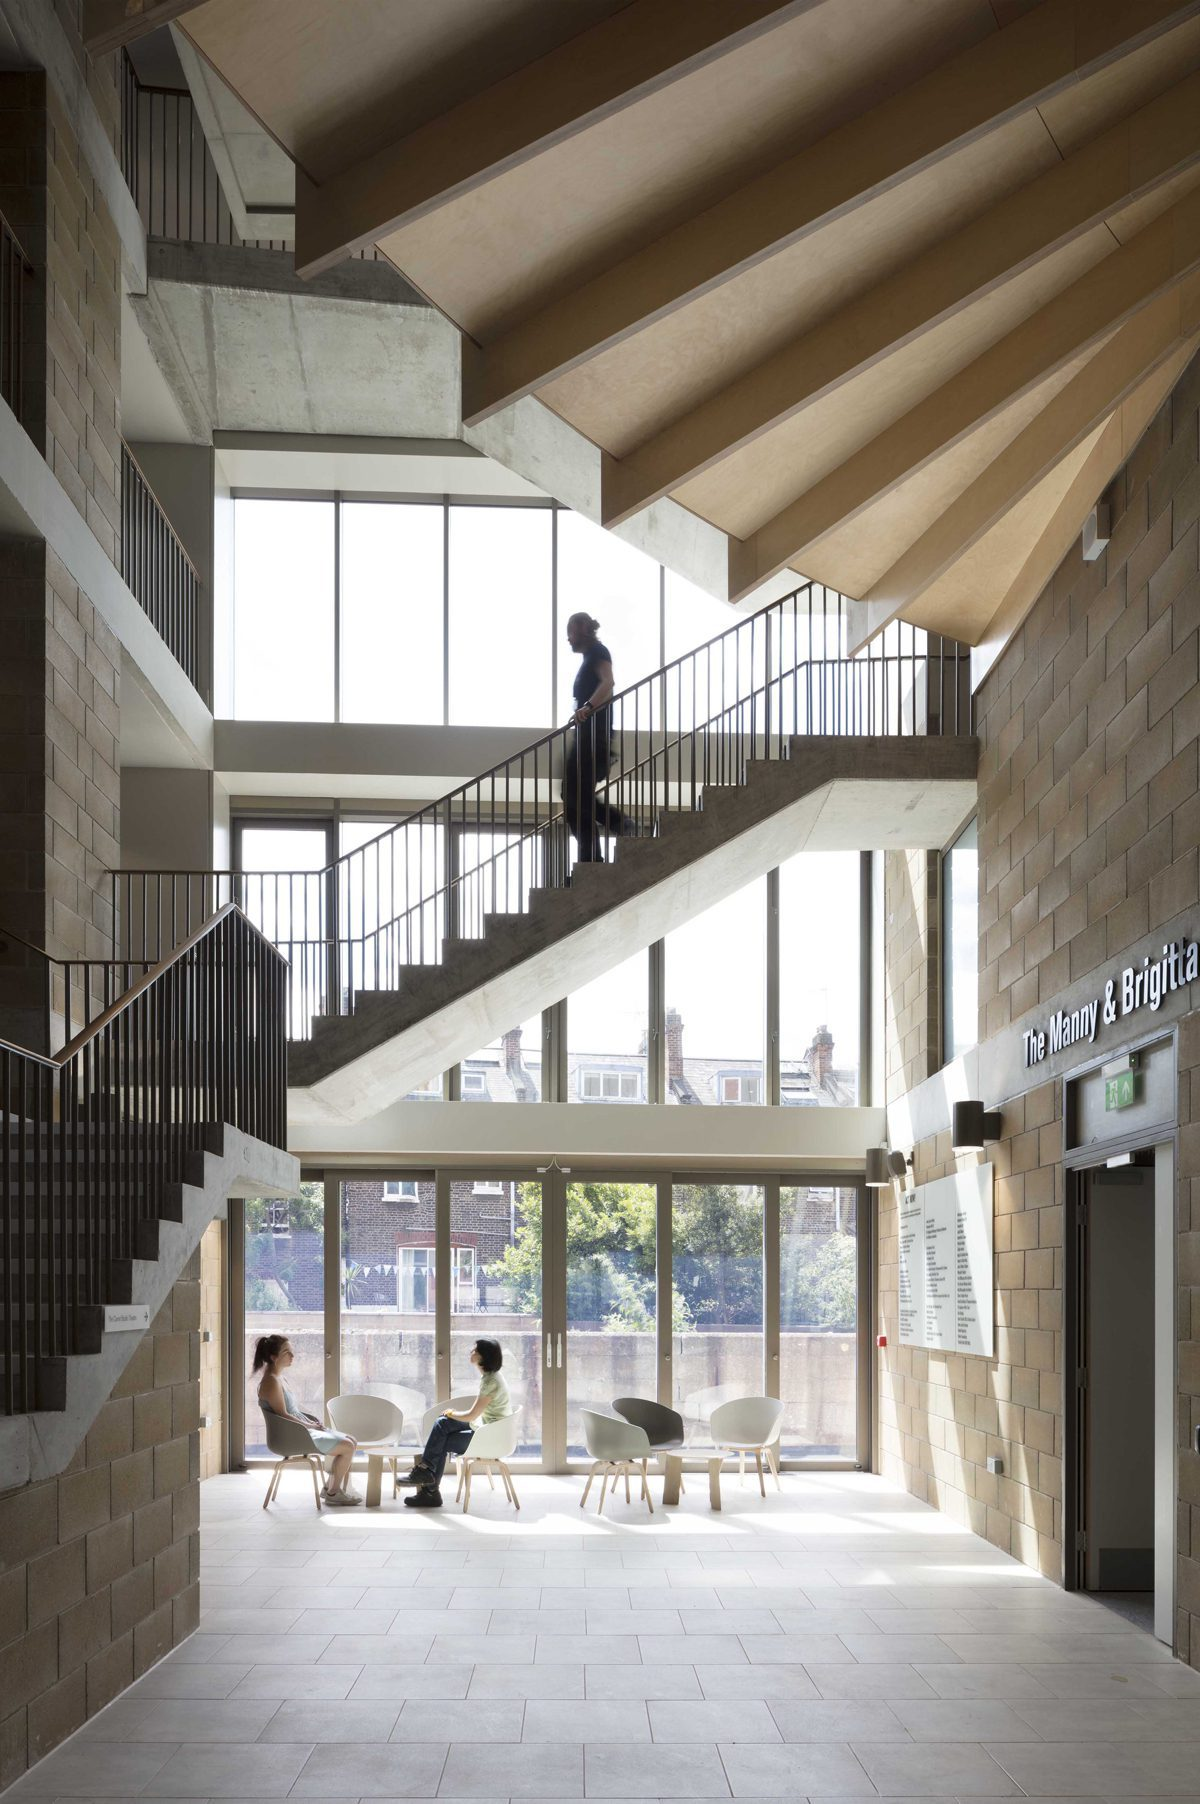 Cultural Building | Architecture Today